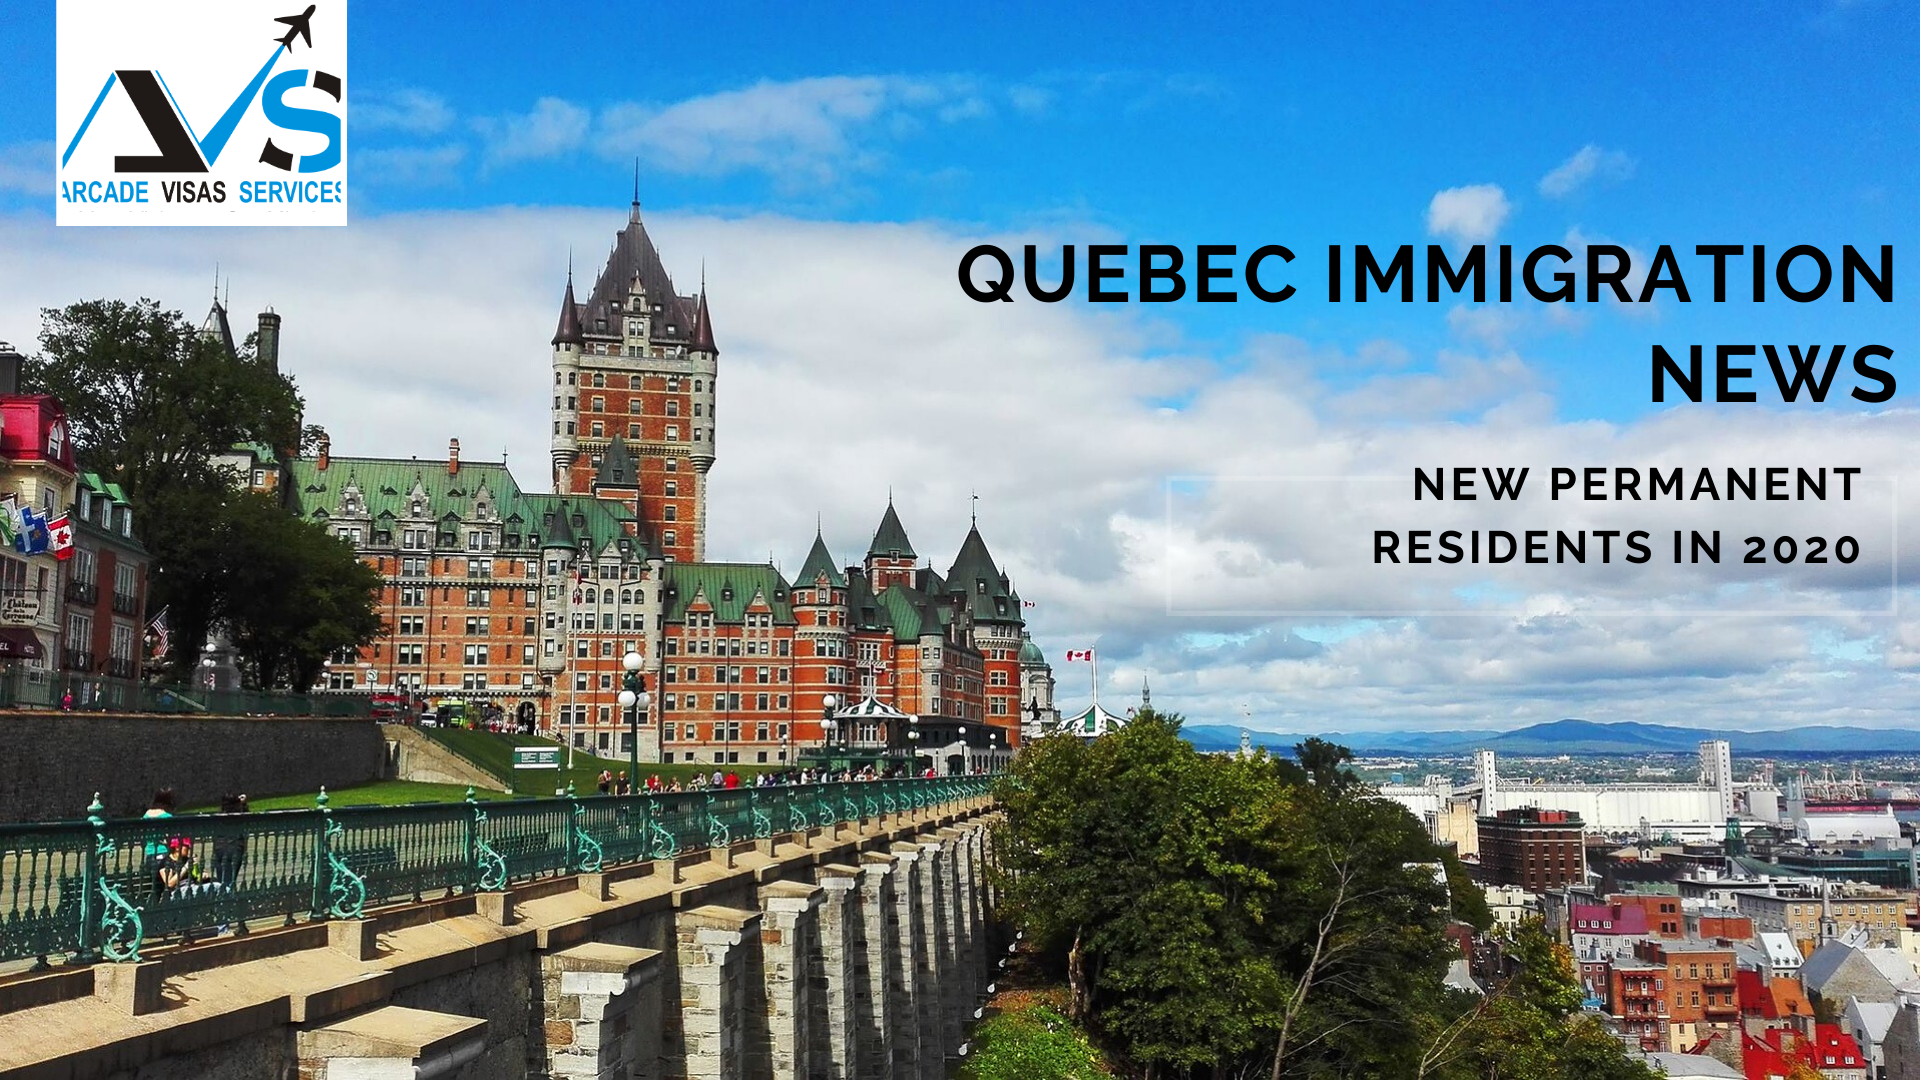 Quebec Immigration Latest News – New Permanent Residents in 2020